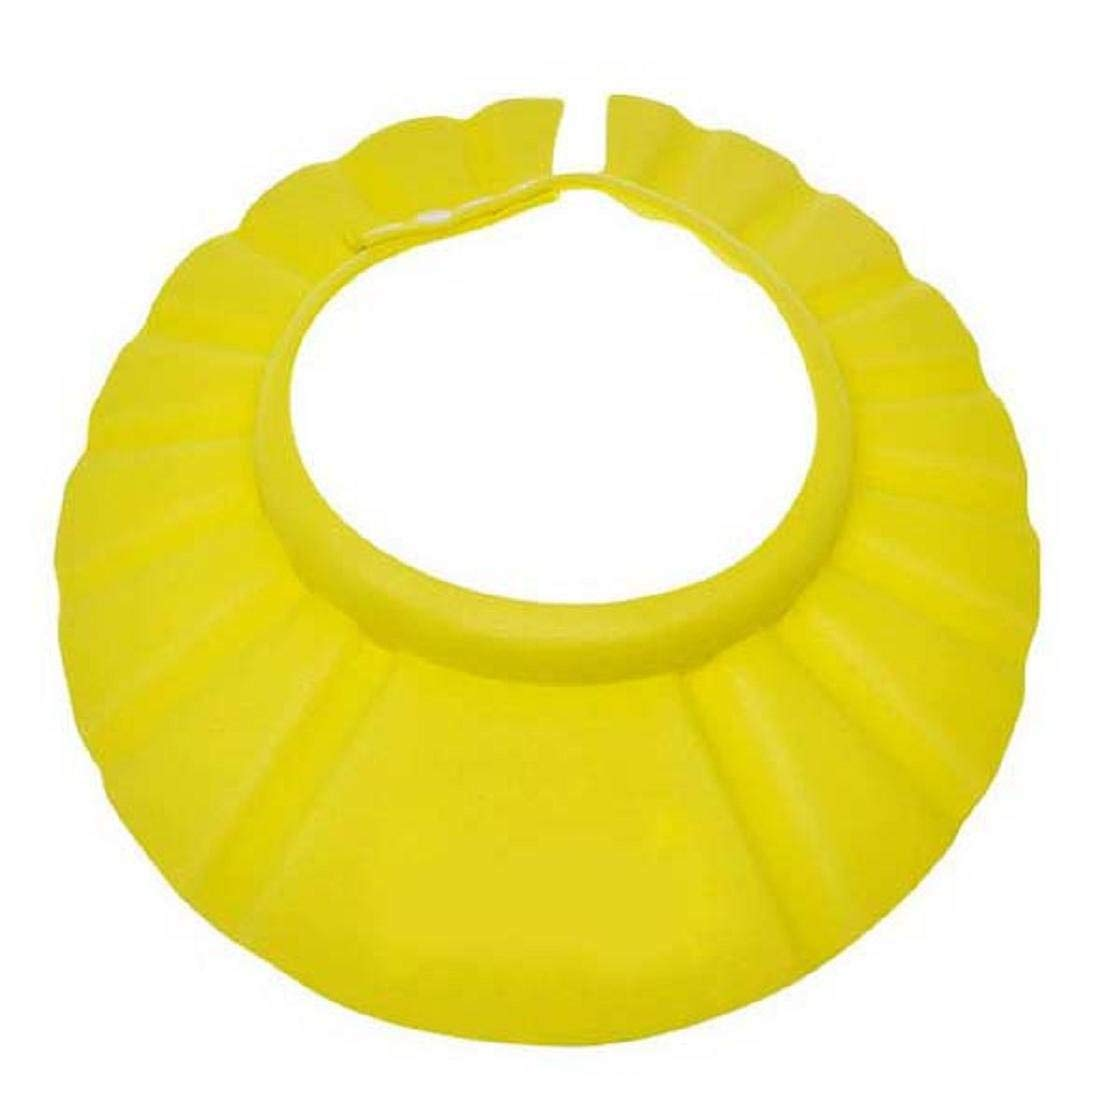 Lightweight Bathing Protection Cap Adjustable Safe Shampoo Shower Protective Hat For Baby Kids Yellow Colorful image